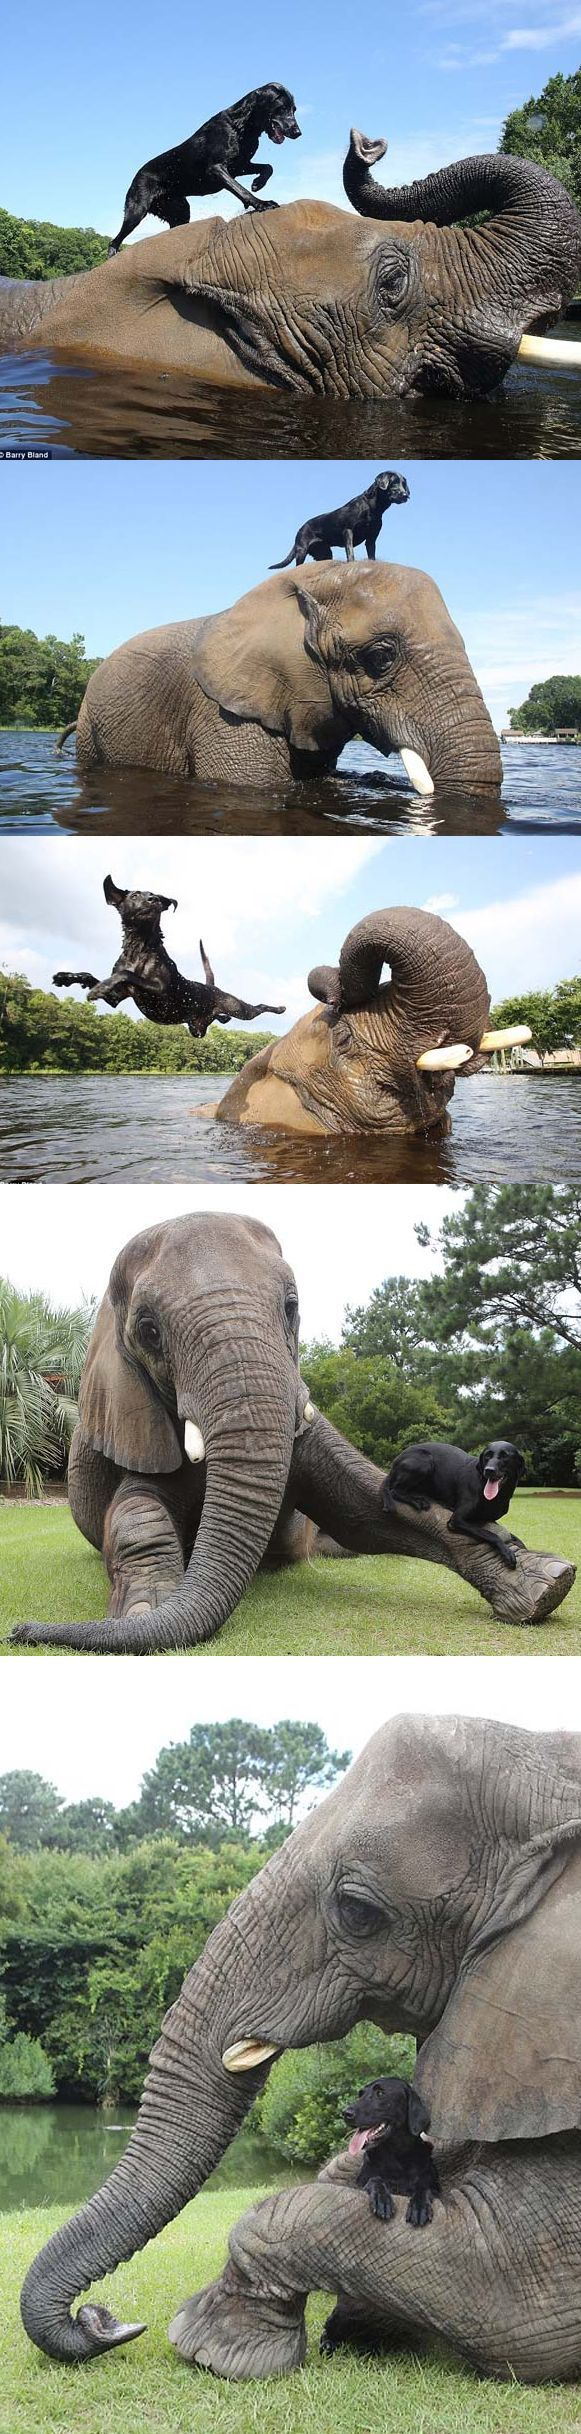 Bubbles the elephant was rescued when she was just a baby, but she hasn't been alone. This orphan made an amazing friend at her sanctuary and their antics are epic. Bella and Bubbles live in Myrtle Beach, South Carolina